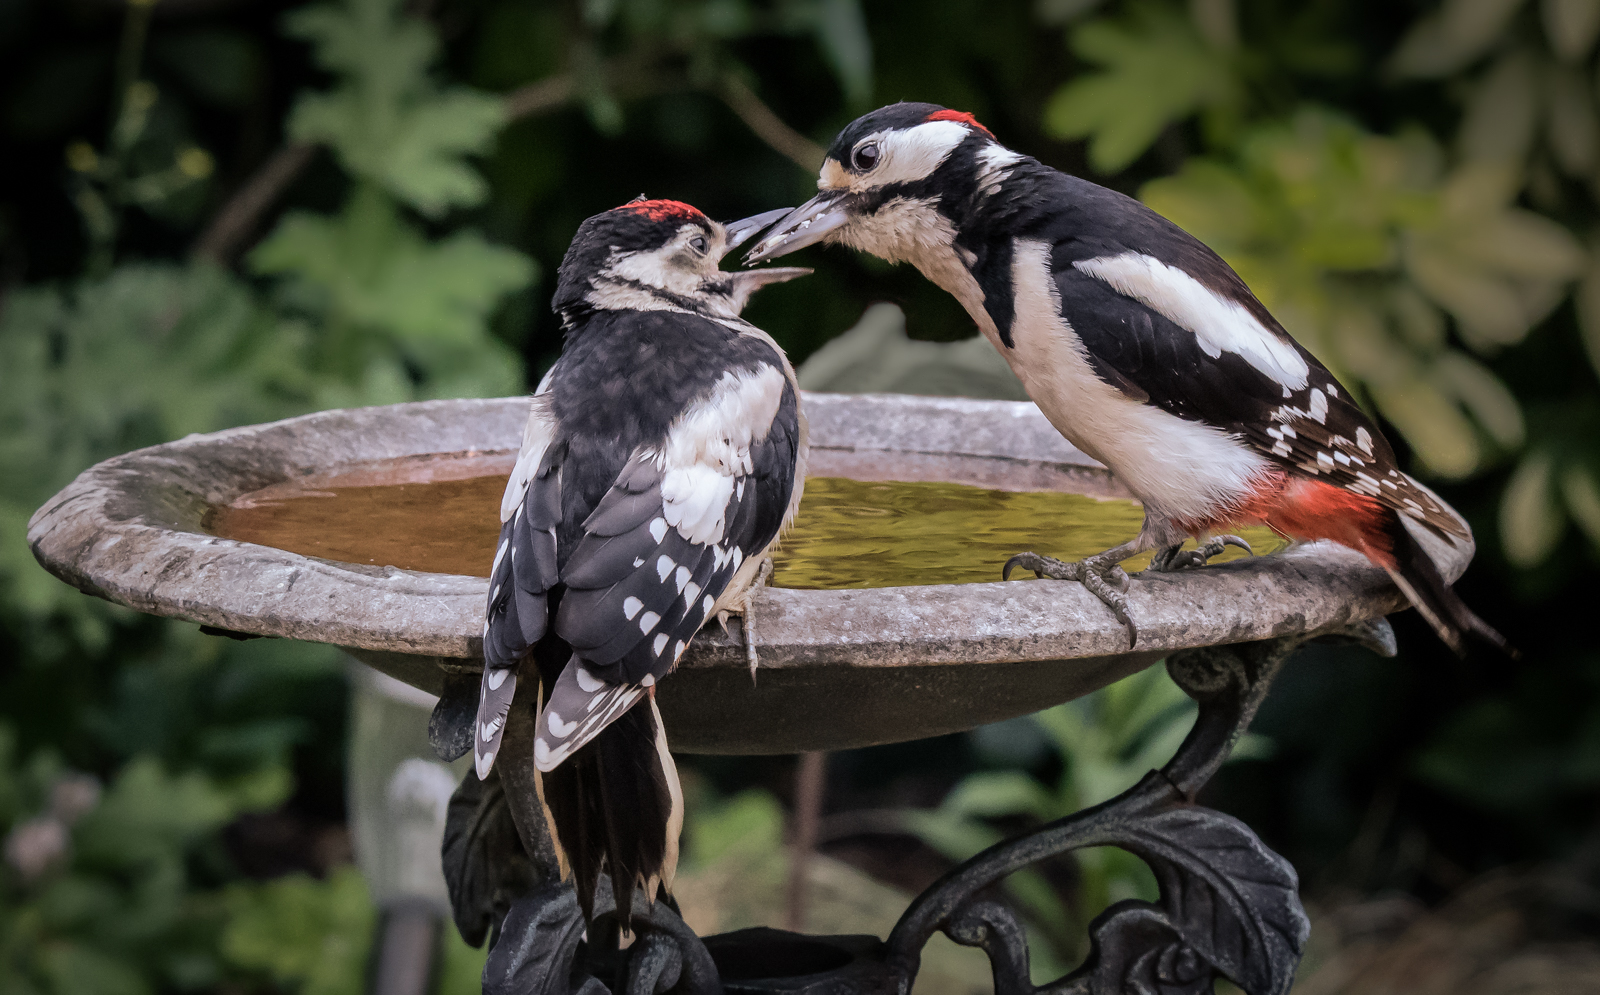 Adult Woodpecker Feeding Juvenile